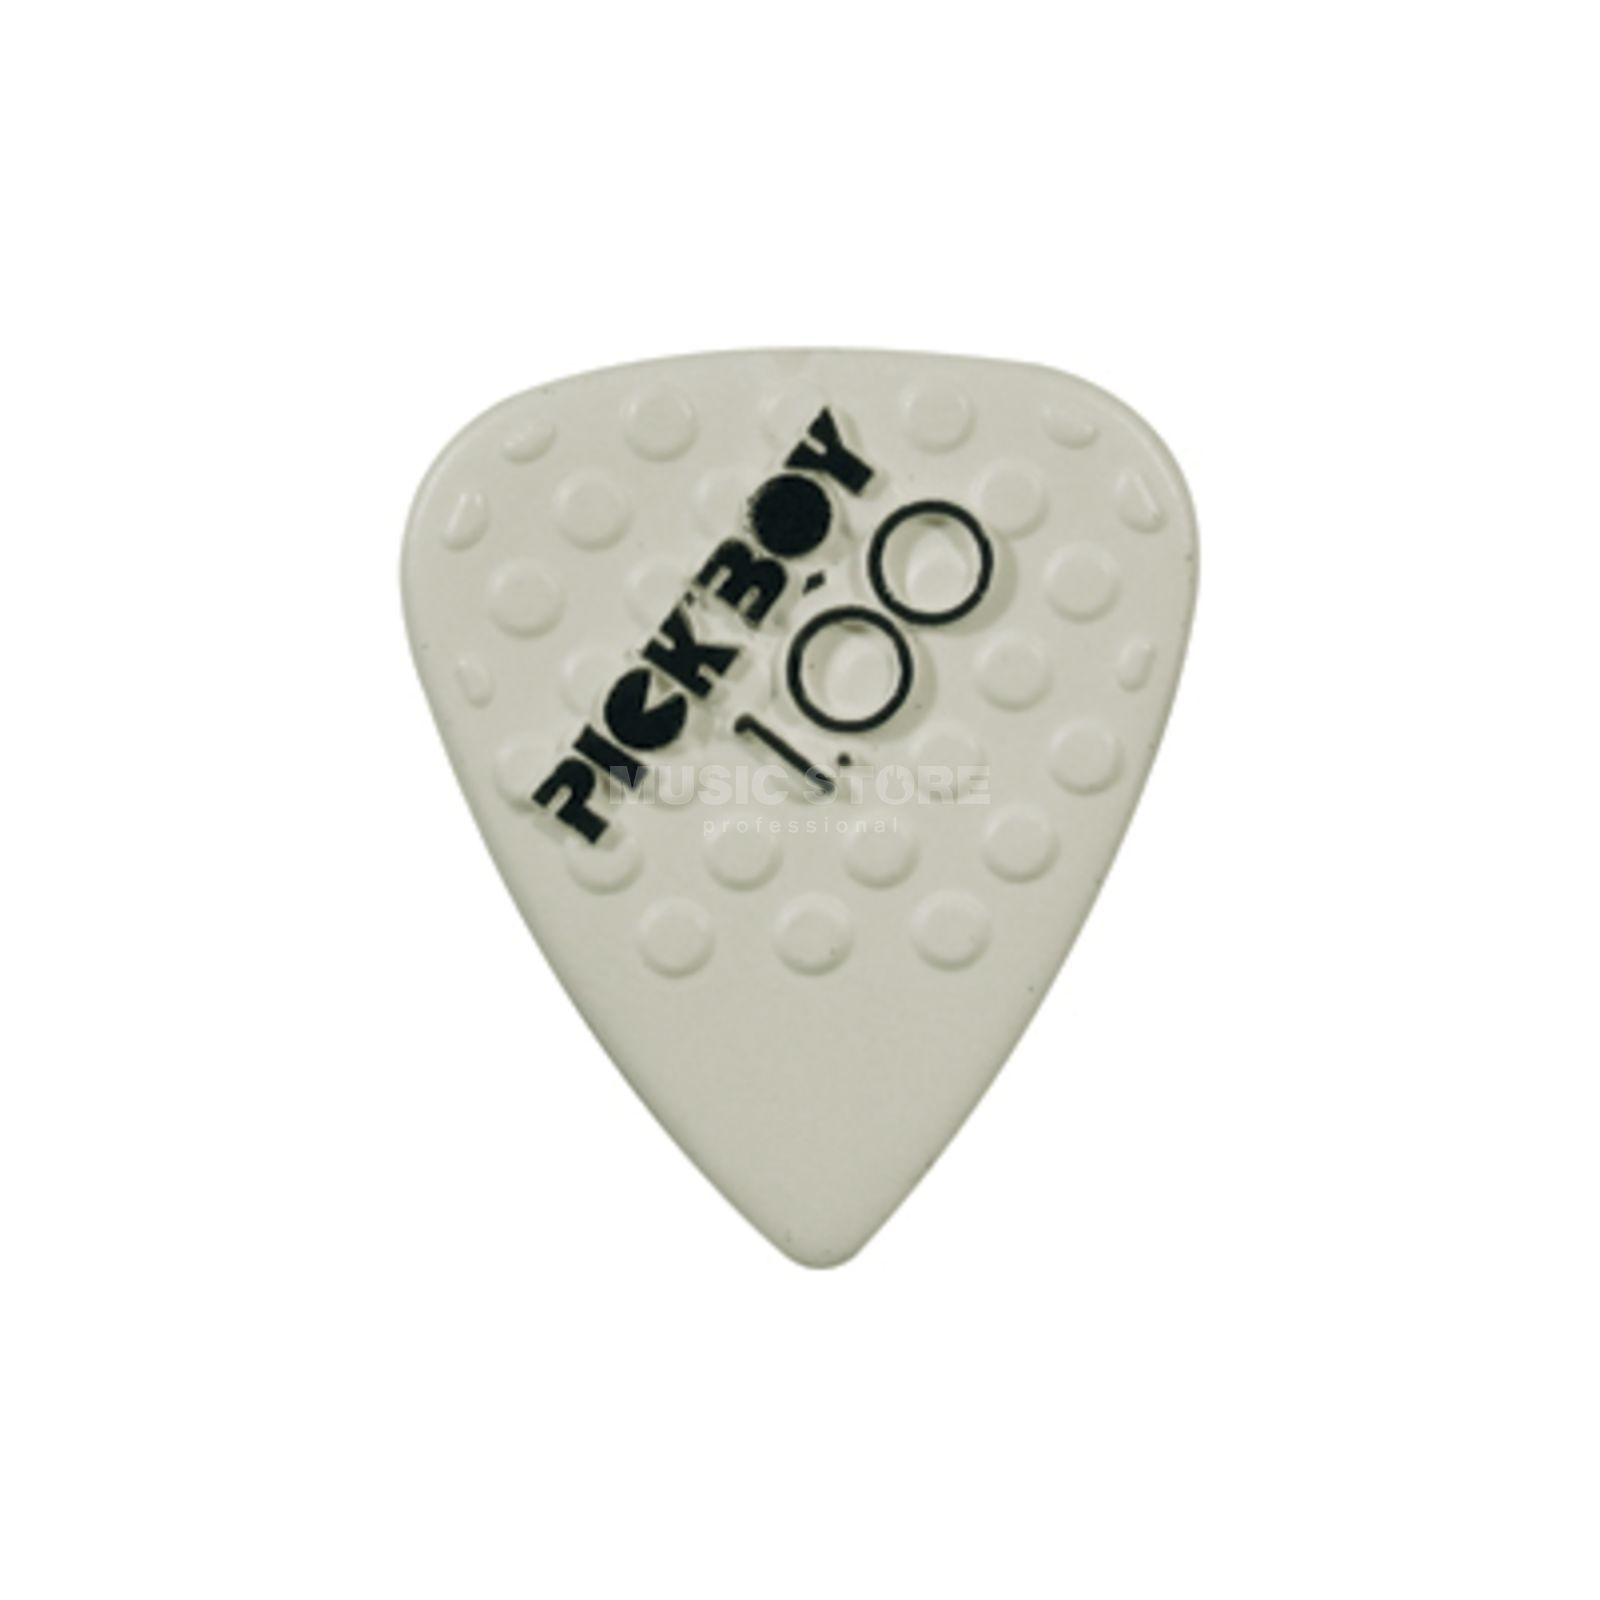 Pickboy Plektrum Ceramic 1,00 mm 12er-Set, Mega Grip Picks Produktbild